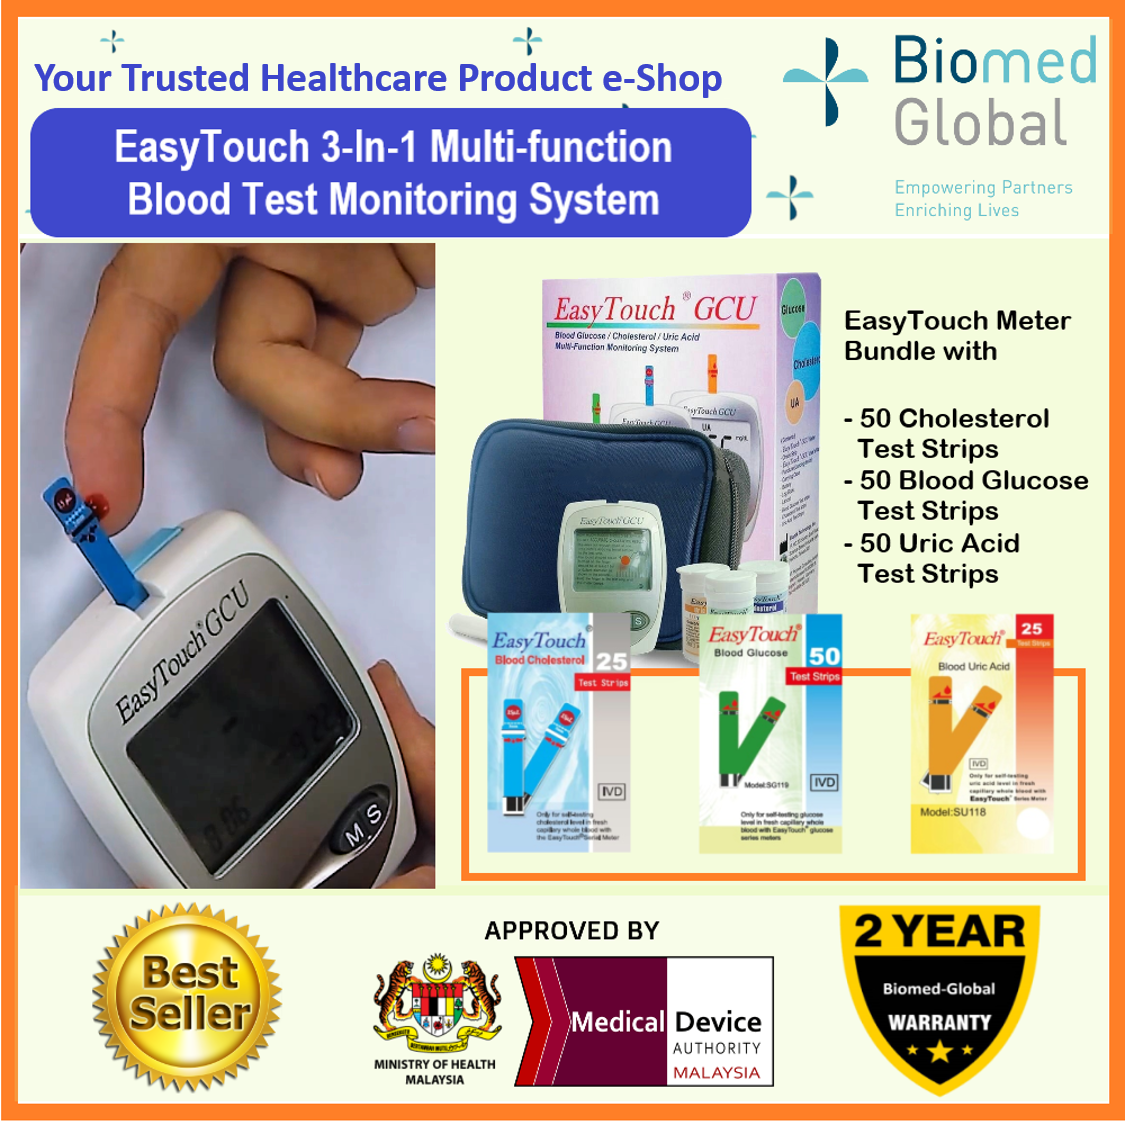 EasyTouch GCU 3-in-1 Blood Glucose, Cholesterol and Uric Acid Meter , FREE with 50 Test Strips Each for Cholesterol, glucose &Uric Acid Test (BUNDLE PACK)